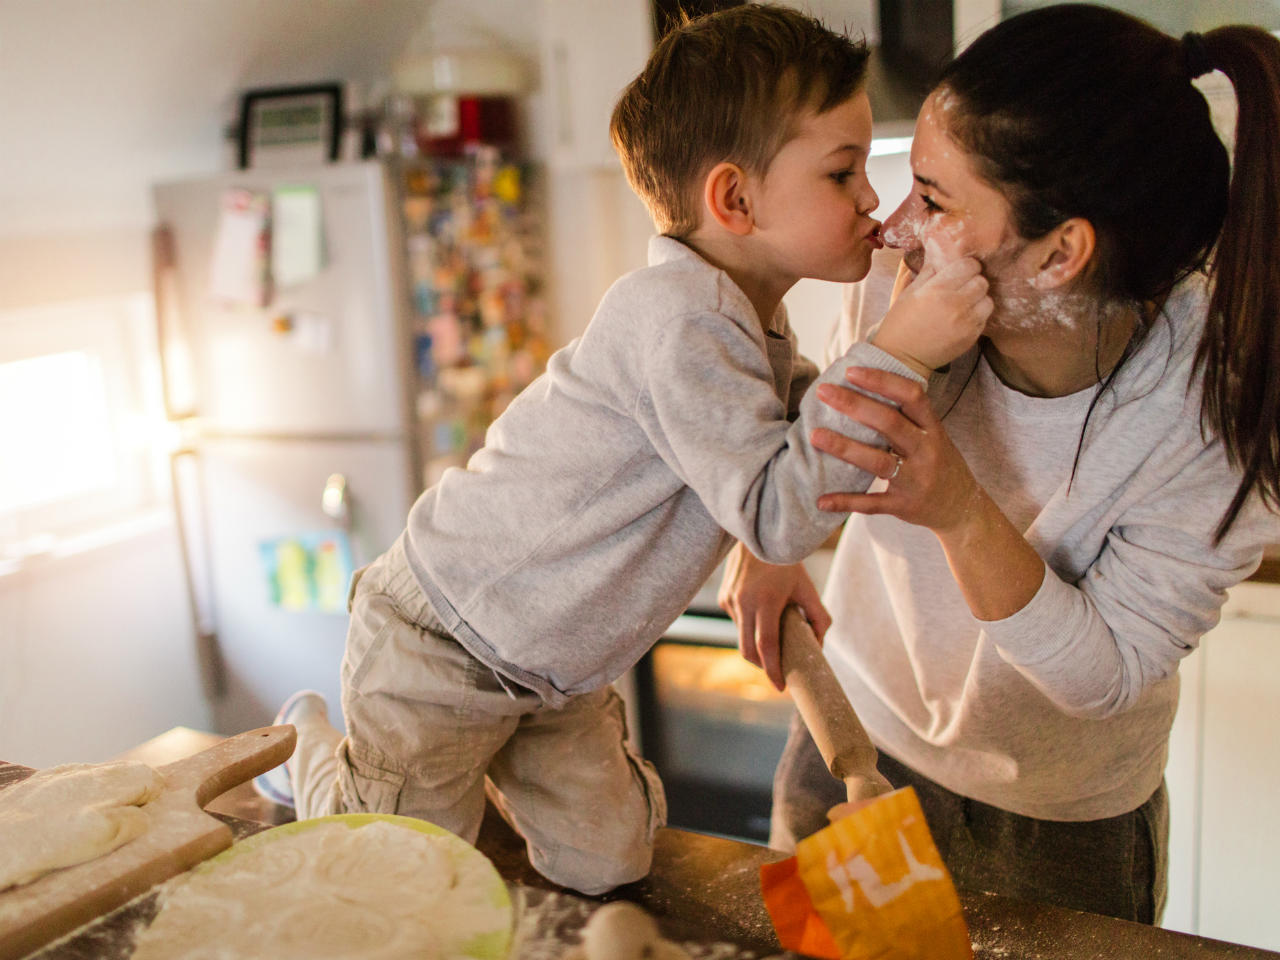 Mom and son being affectionate while baking together